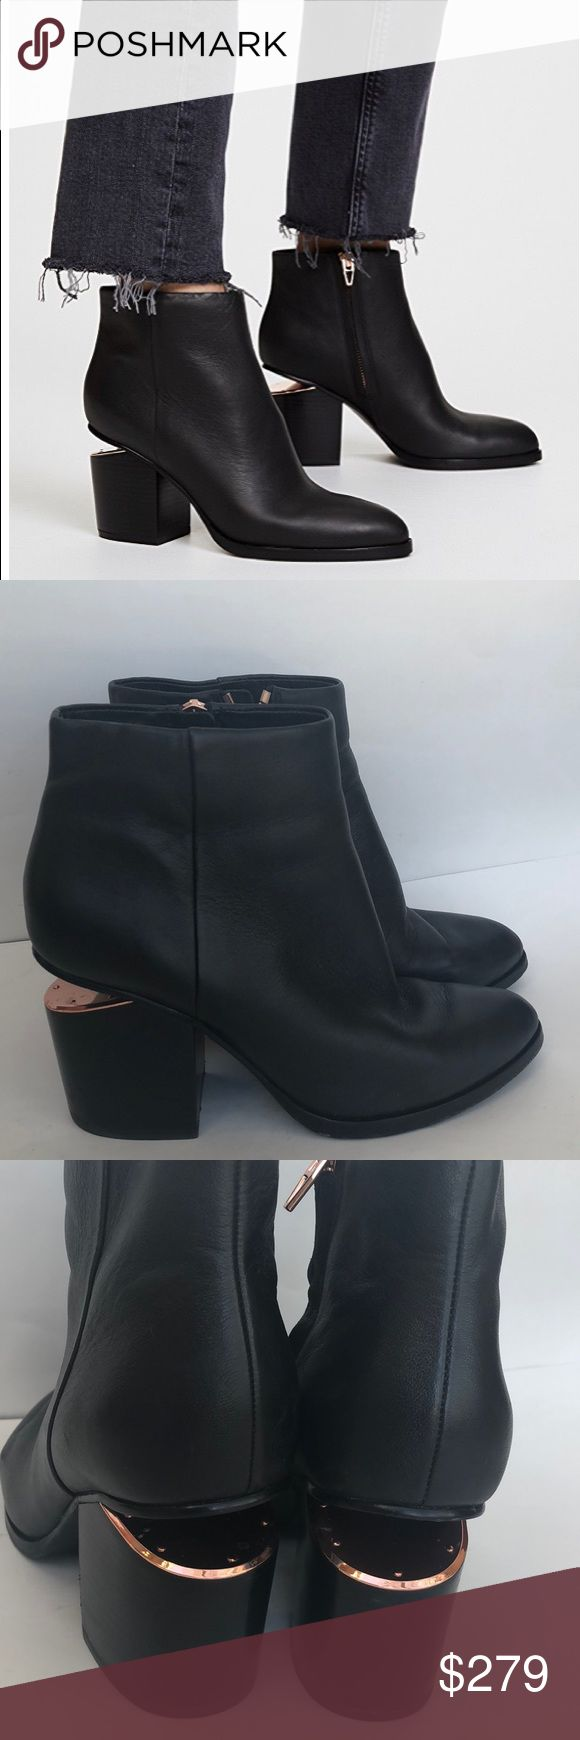 Alexander Wang Gabi Booties Black Rose Gold 36.5 Pre-owned authentic Alexander Wang Gabi booties in size 36.5. Current style and still full price online!! These are in great condition, tons of life left. There are normal signs of wear throughout and some marks on the heels. Please look at photos. No box. Alexander Wang Shoes Ankle Boots & Booties